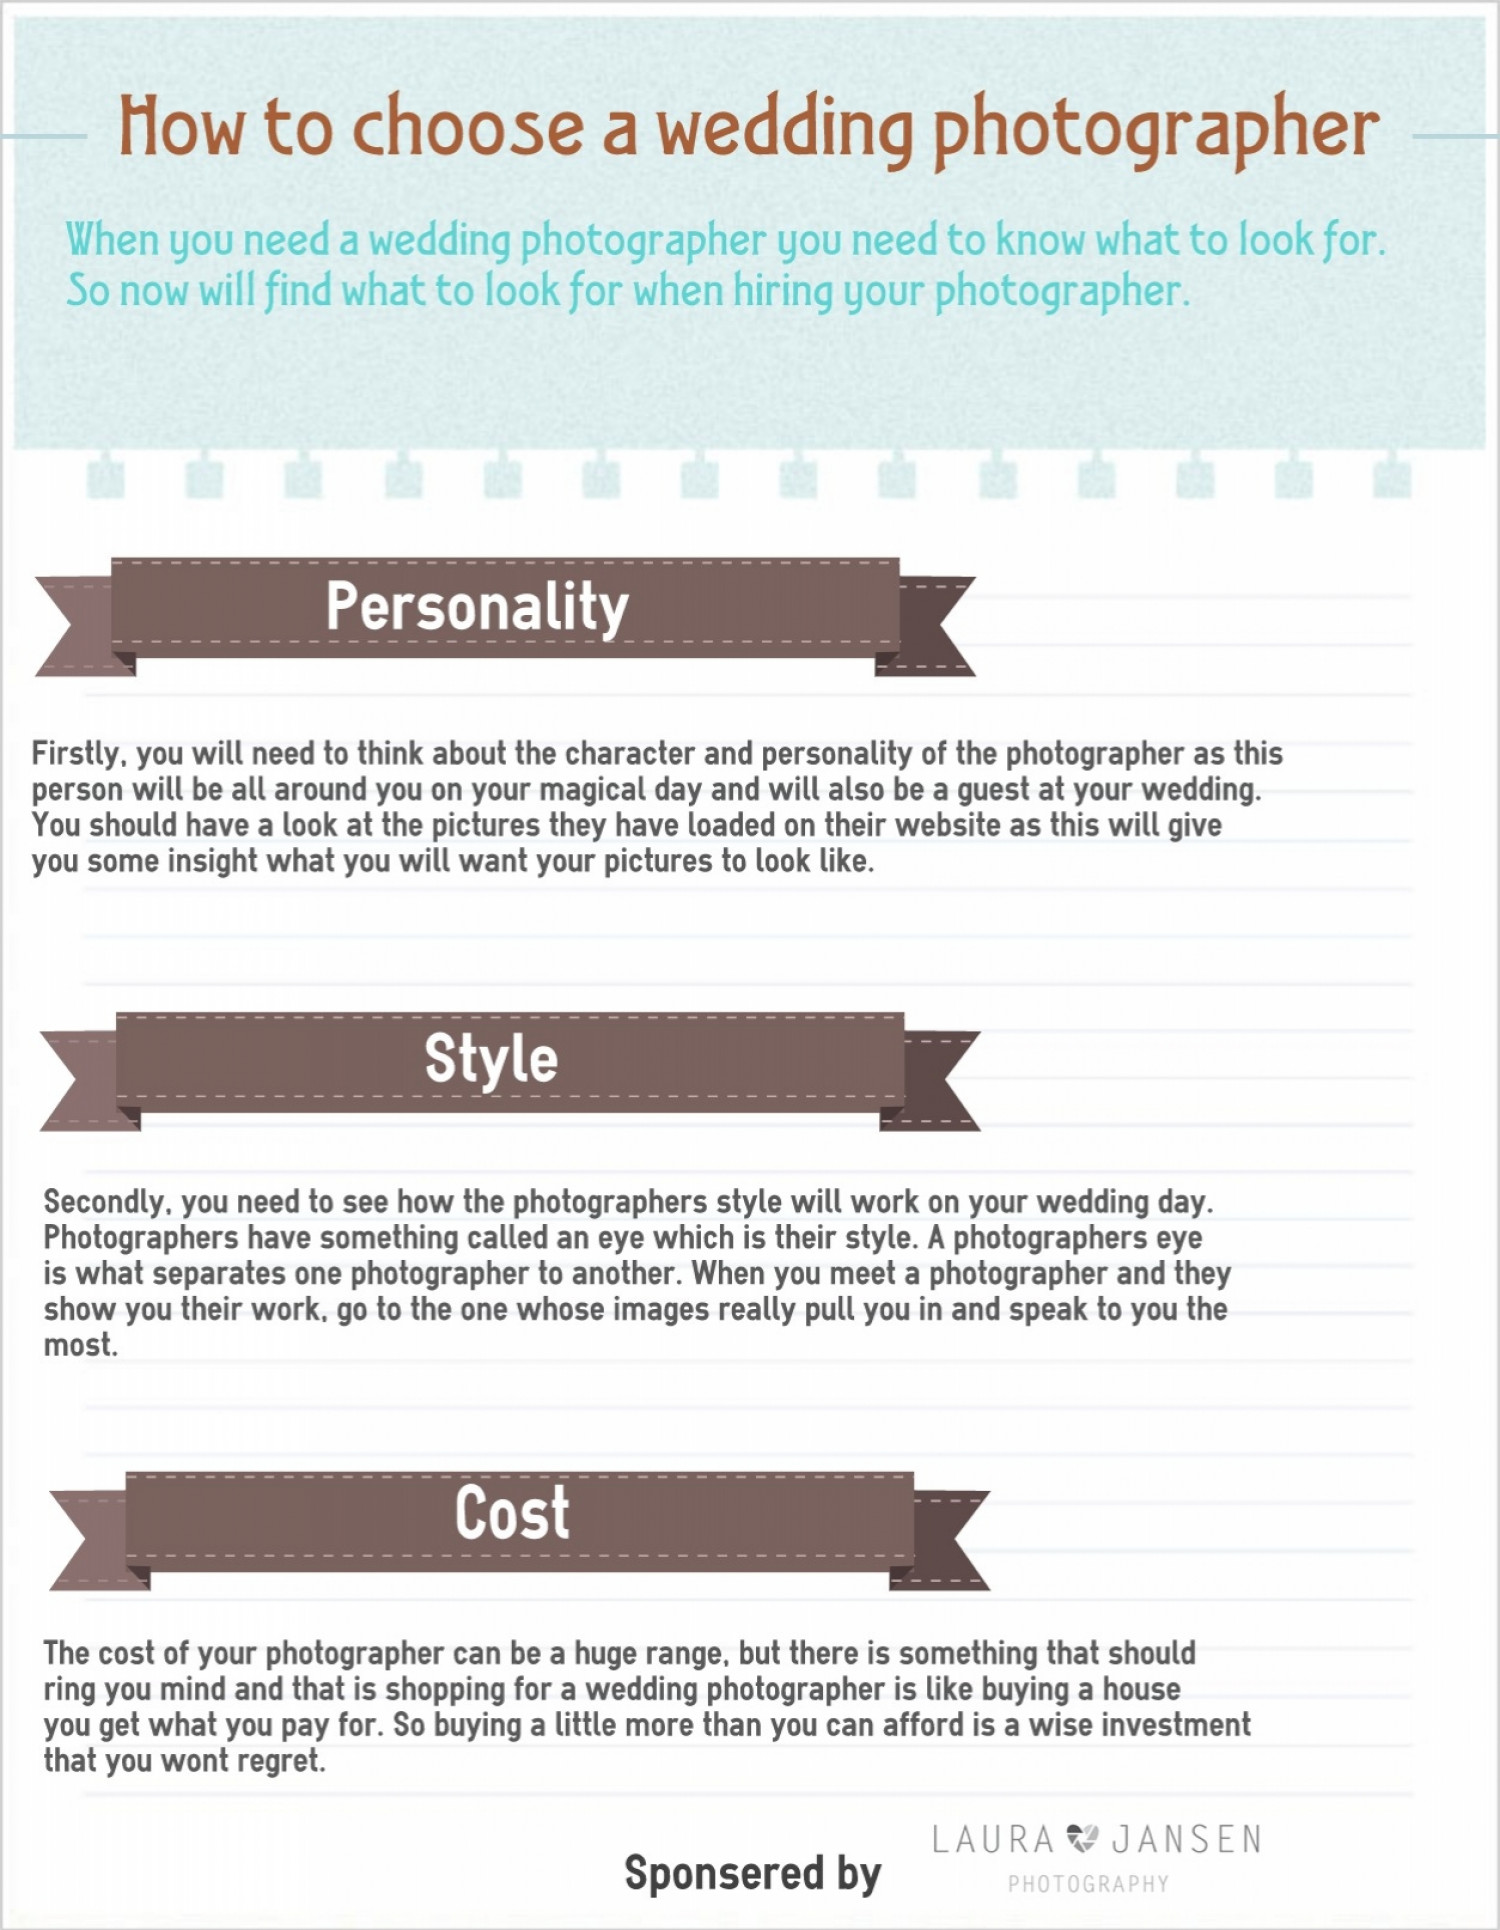 How to choose a wedding photographer visual how to choose a wedding photographer infographic junglespirit Choice Image